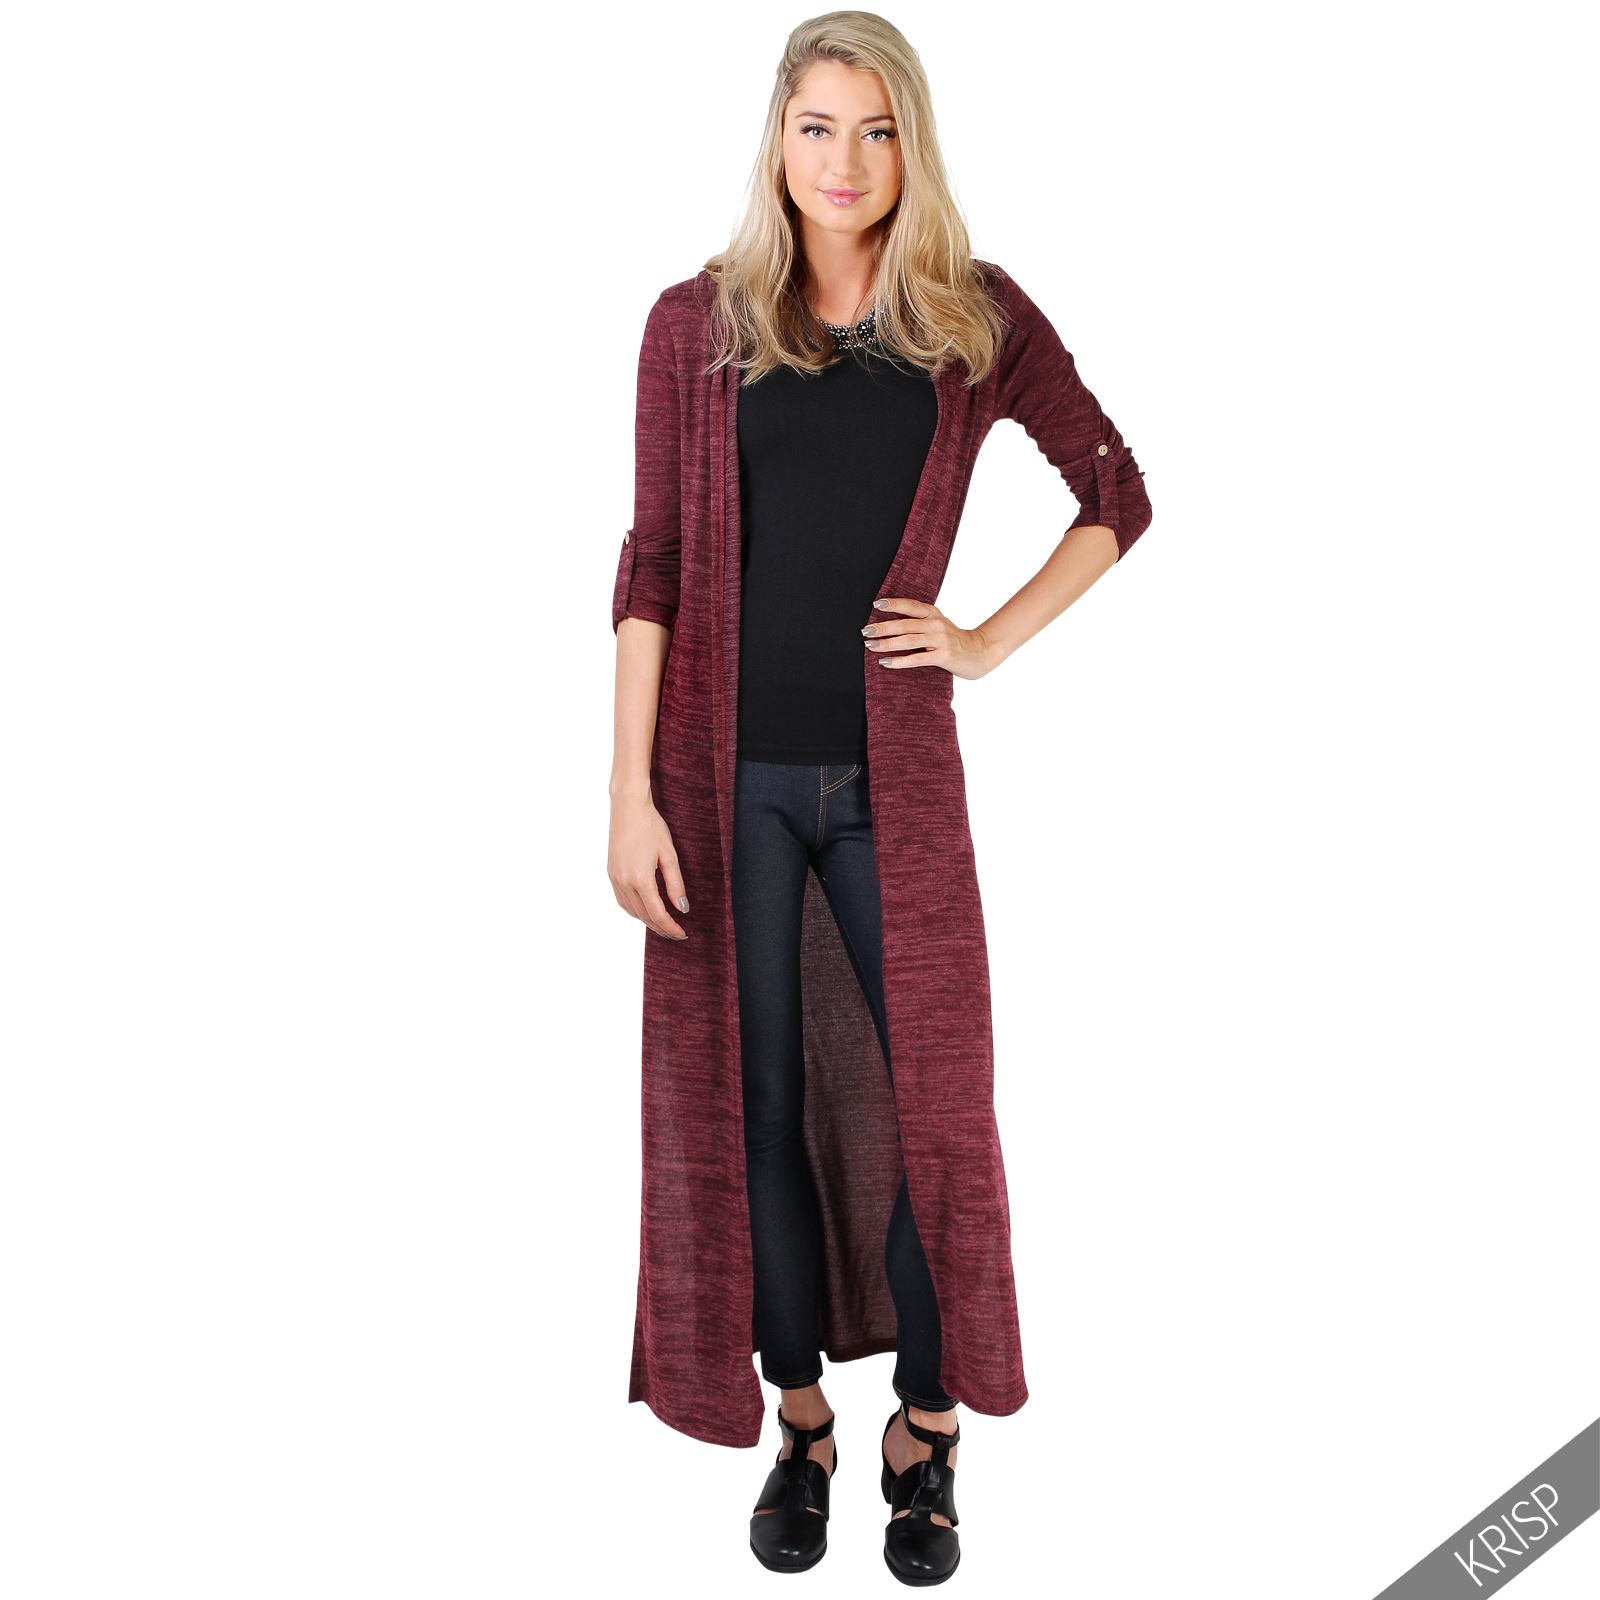 womens soft knit hooded long cardigan sweater shrug duster. Black Bedroom Furniture Sets. Home Design Ideas